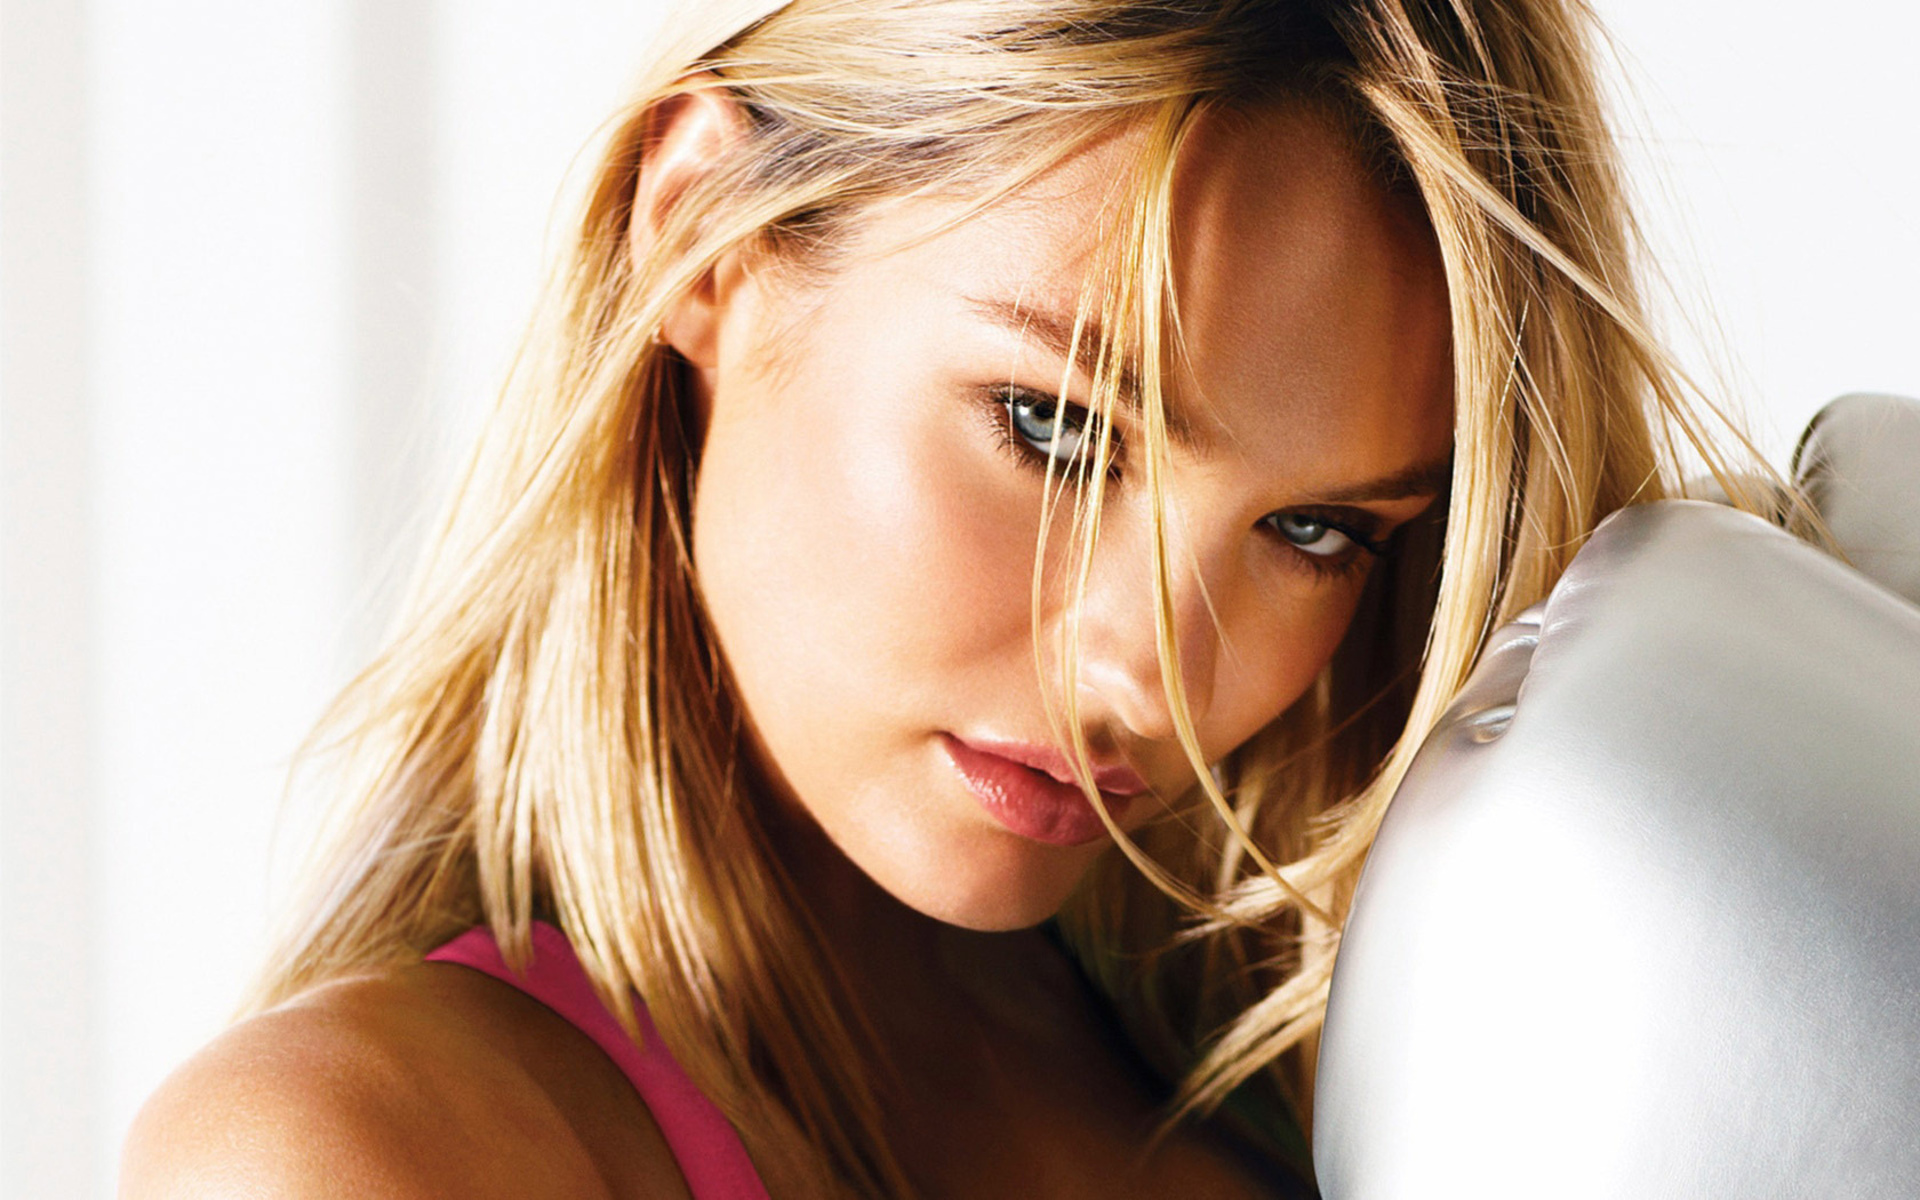 Candice Swanepoel HD Wallpaper   Background Image   2560x1600